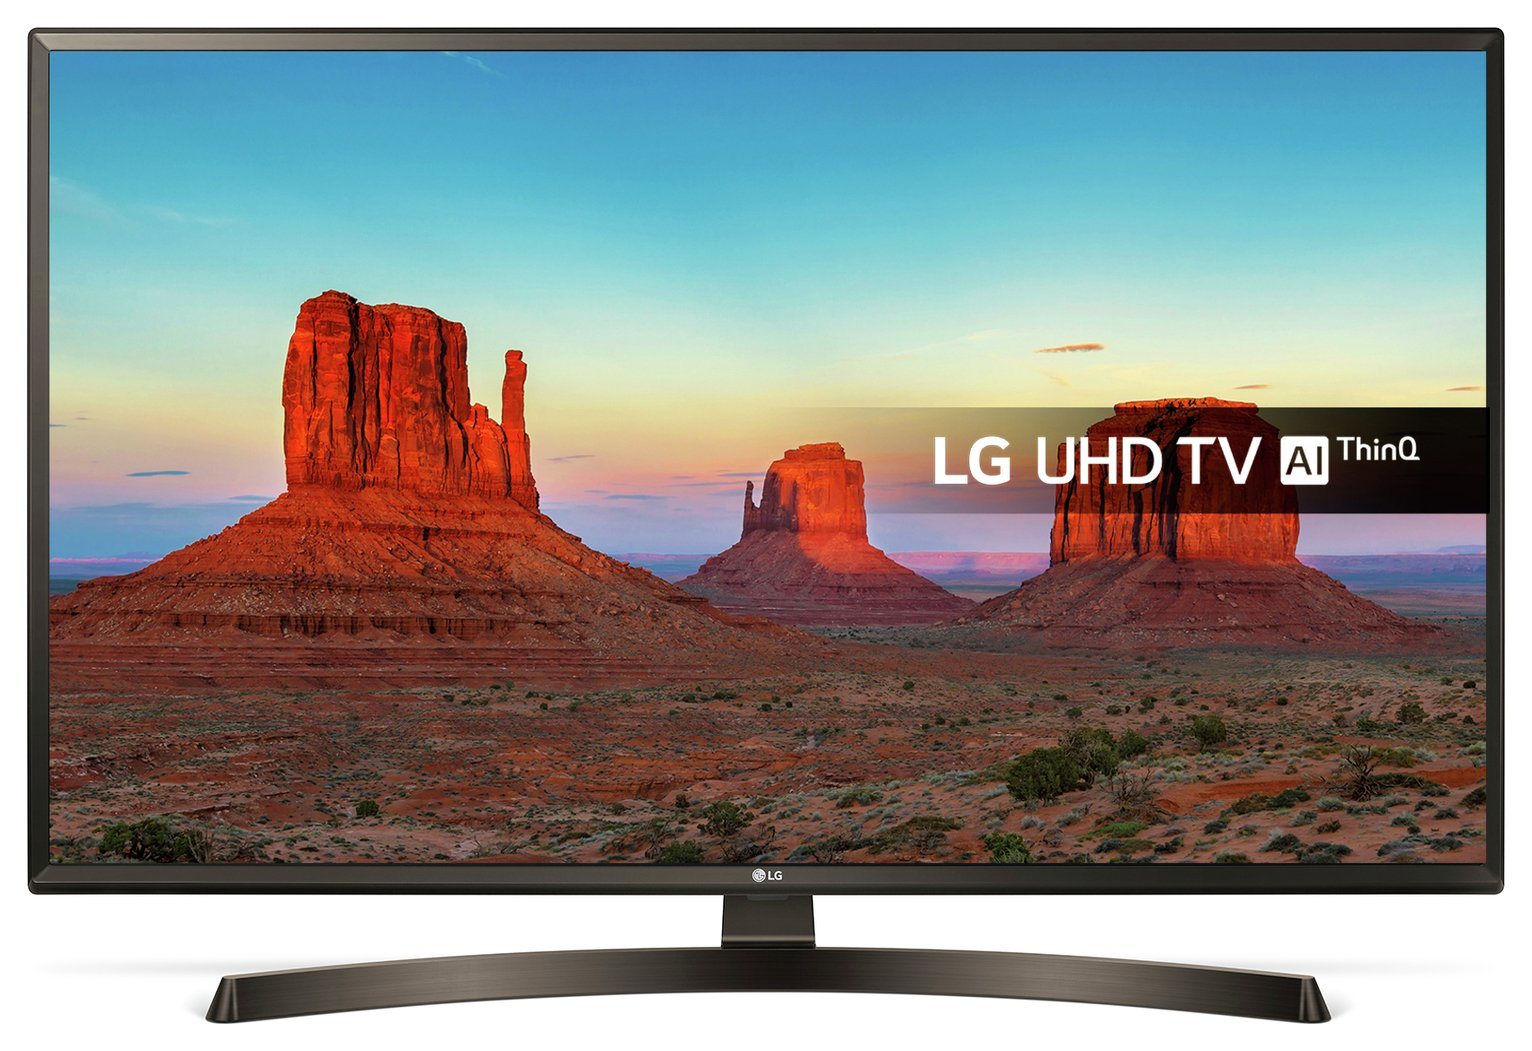 LG 49 Inch 49UK6400PLF Smart Ultra HD 4K TV with HDR